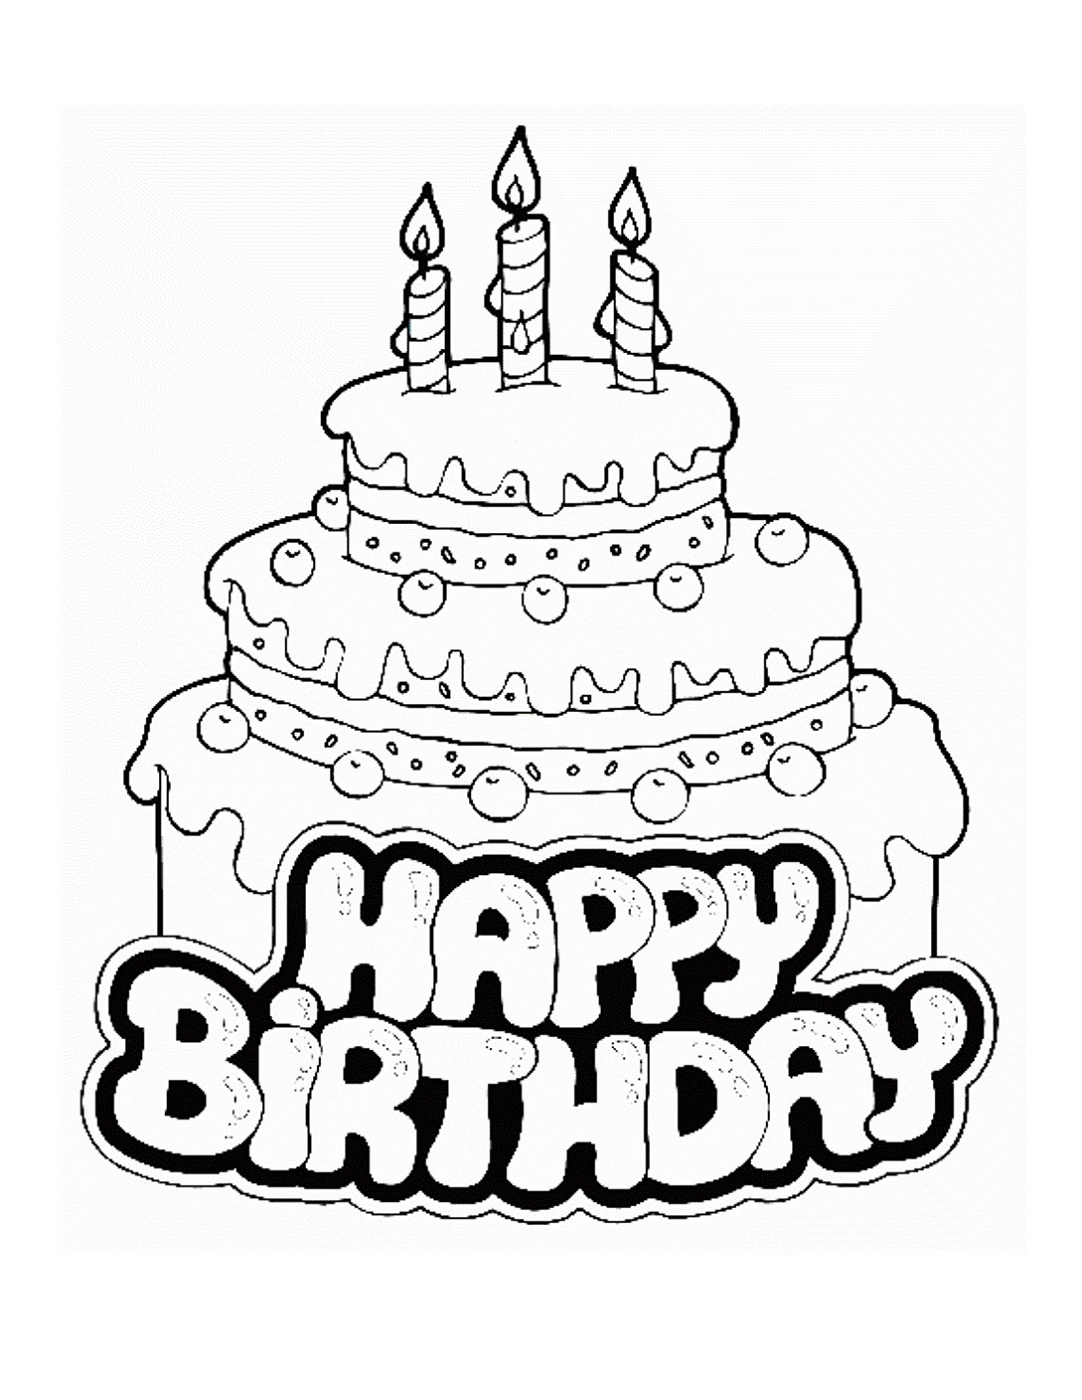 Birthday cake maths facts colouring page - Happy Birthday Color Pages Cake